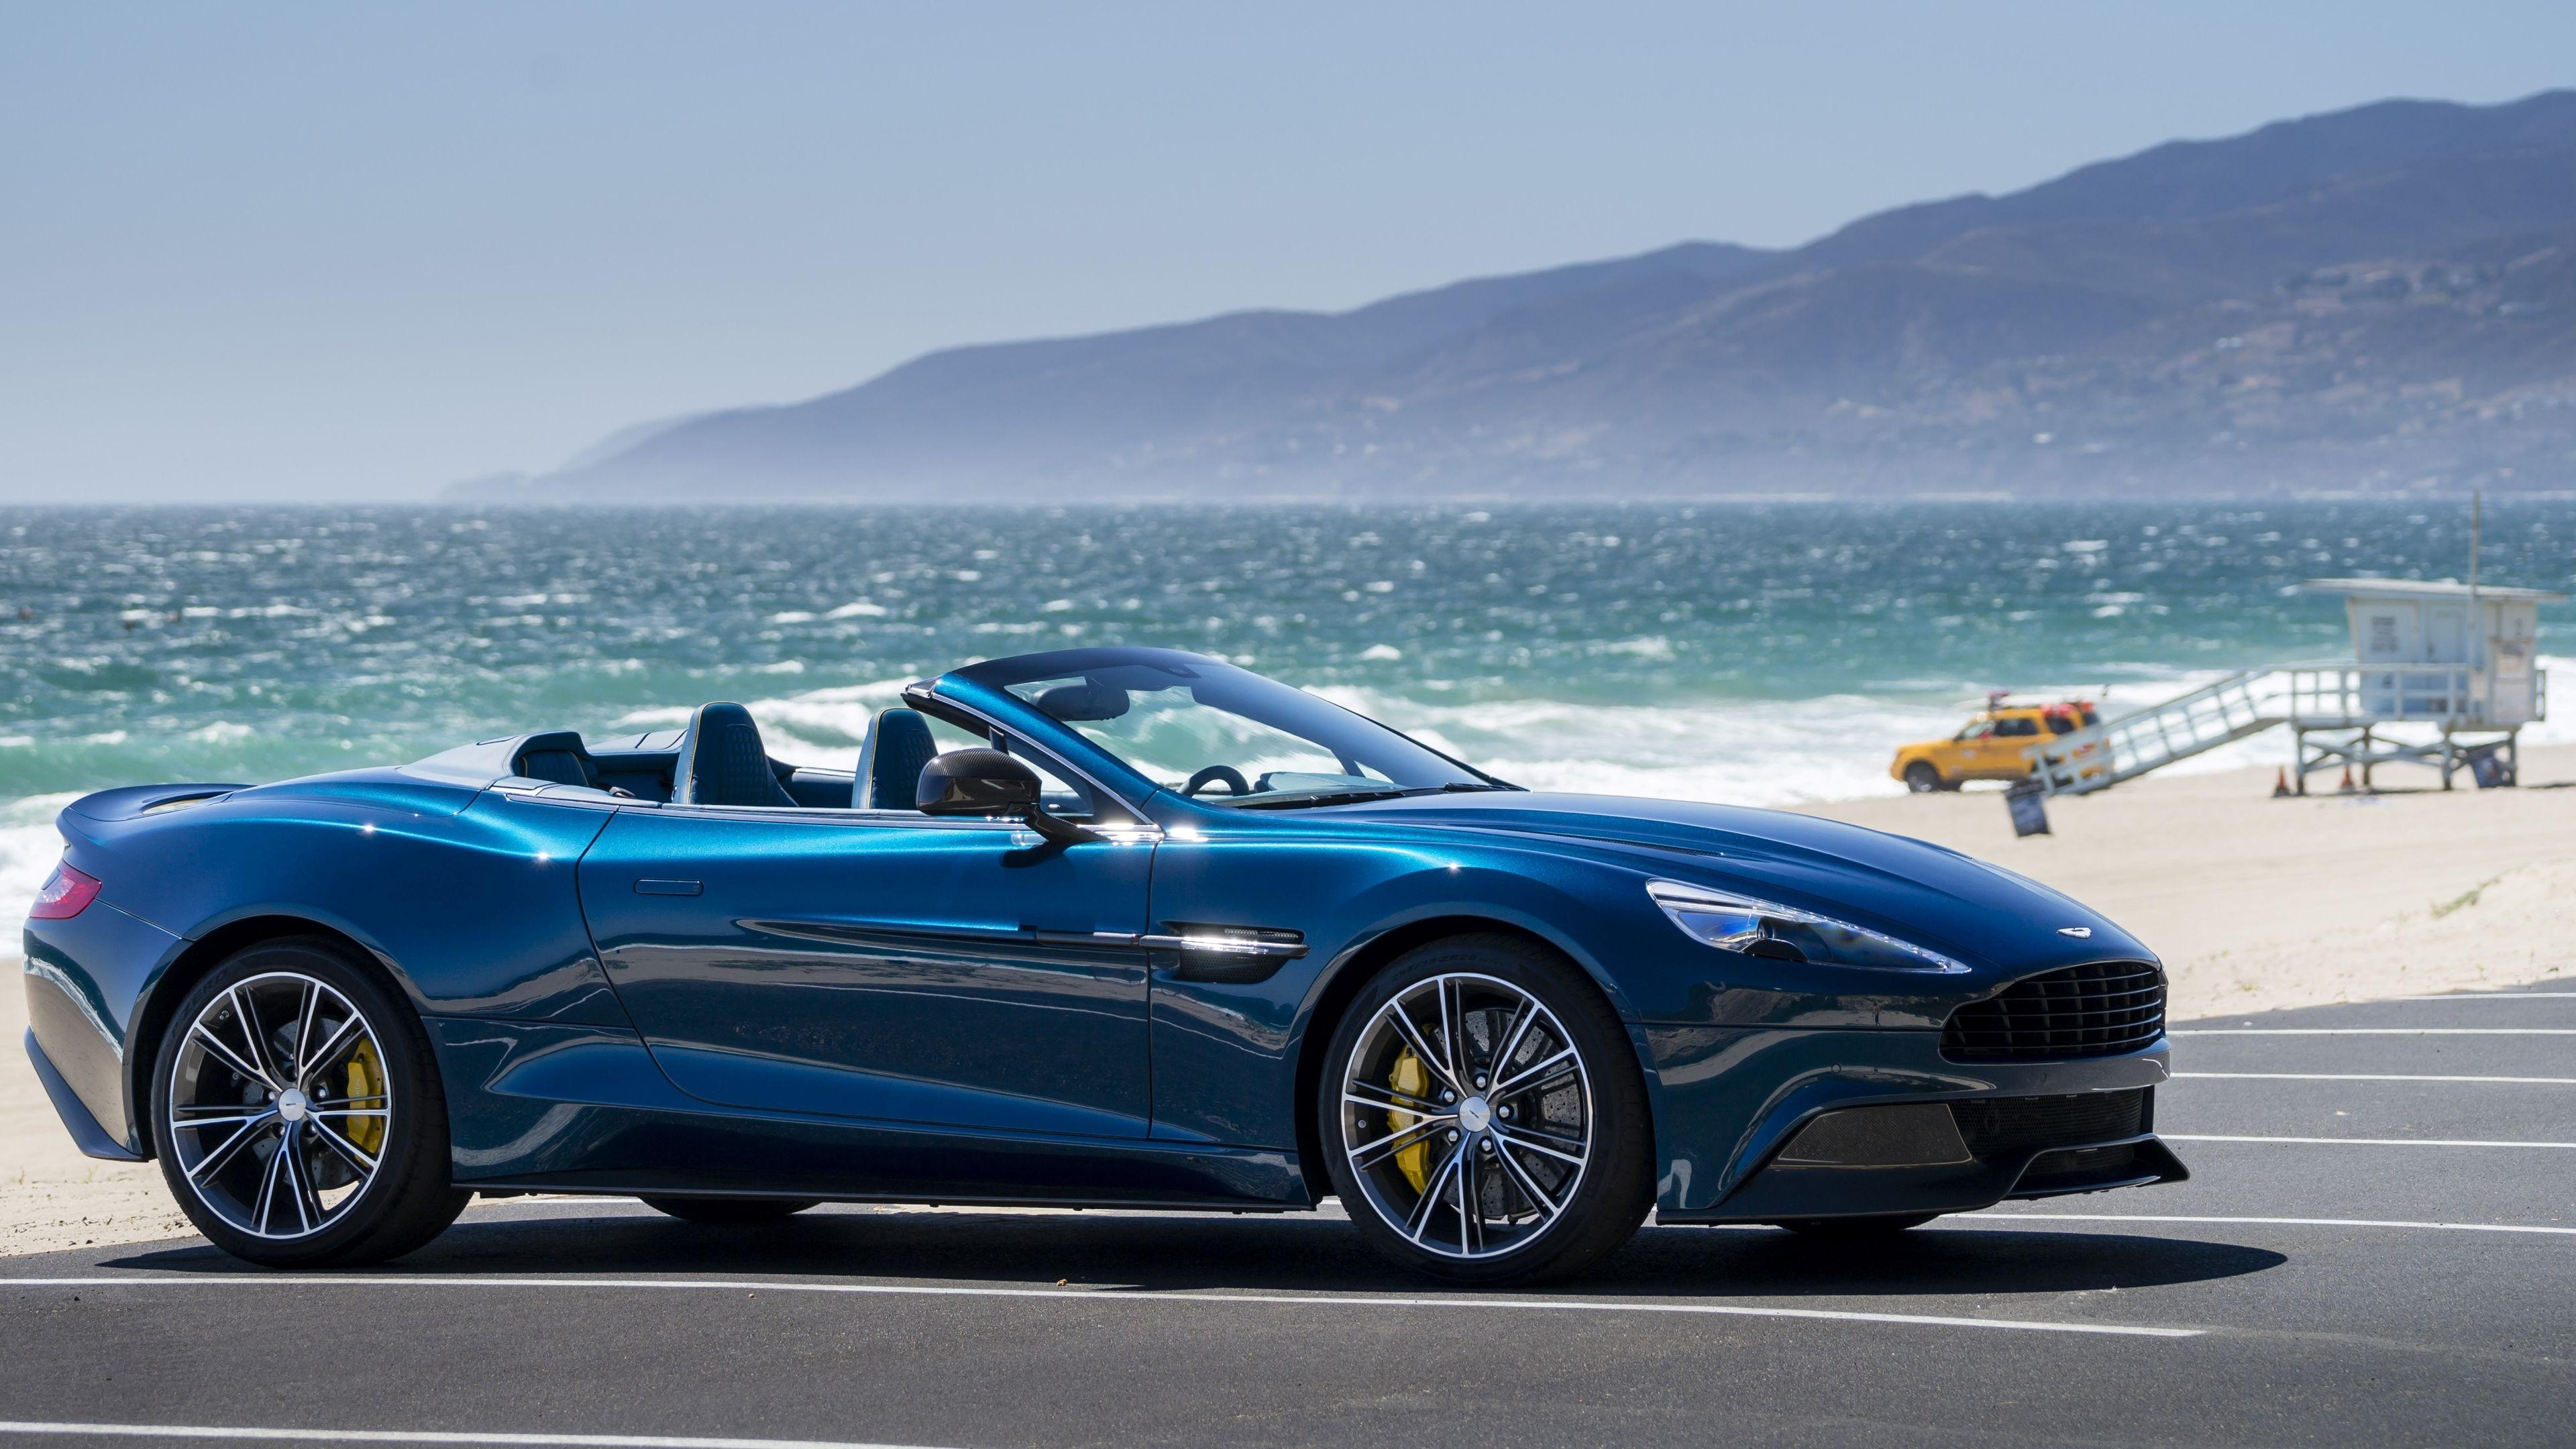 57 Aston Martin Vanquish HD Wallpapers | Background Images ...